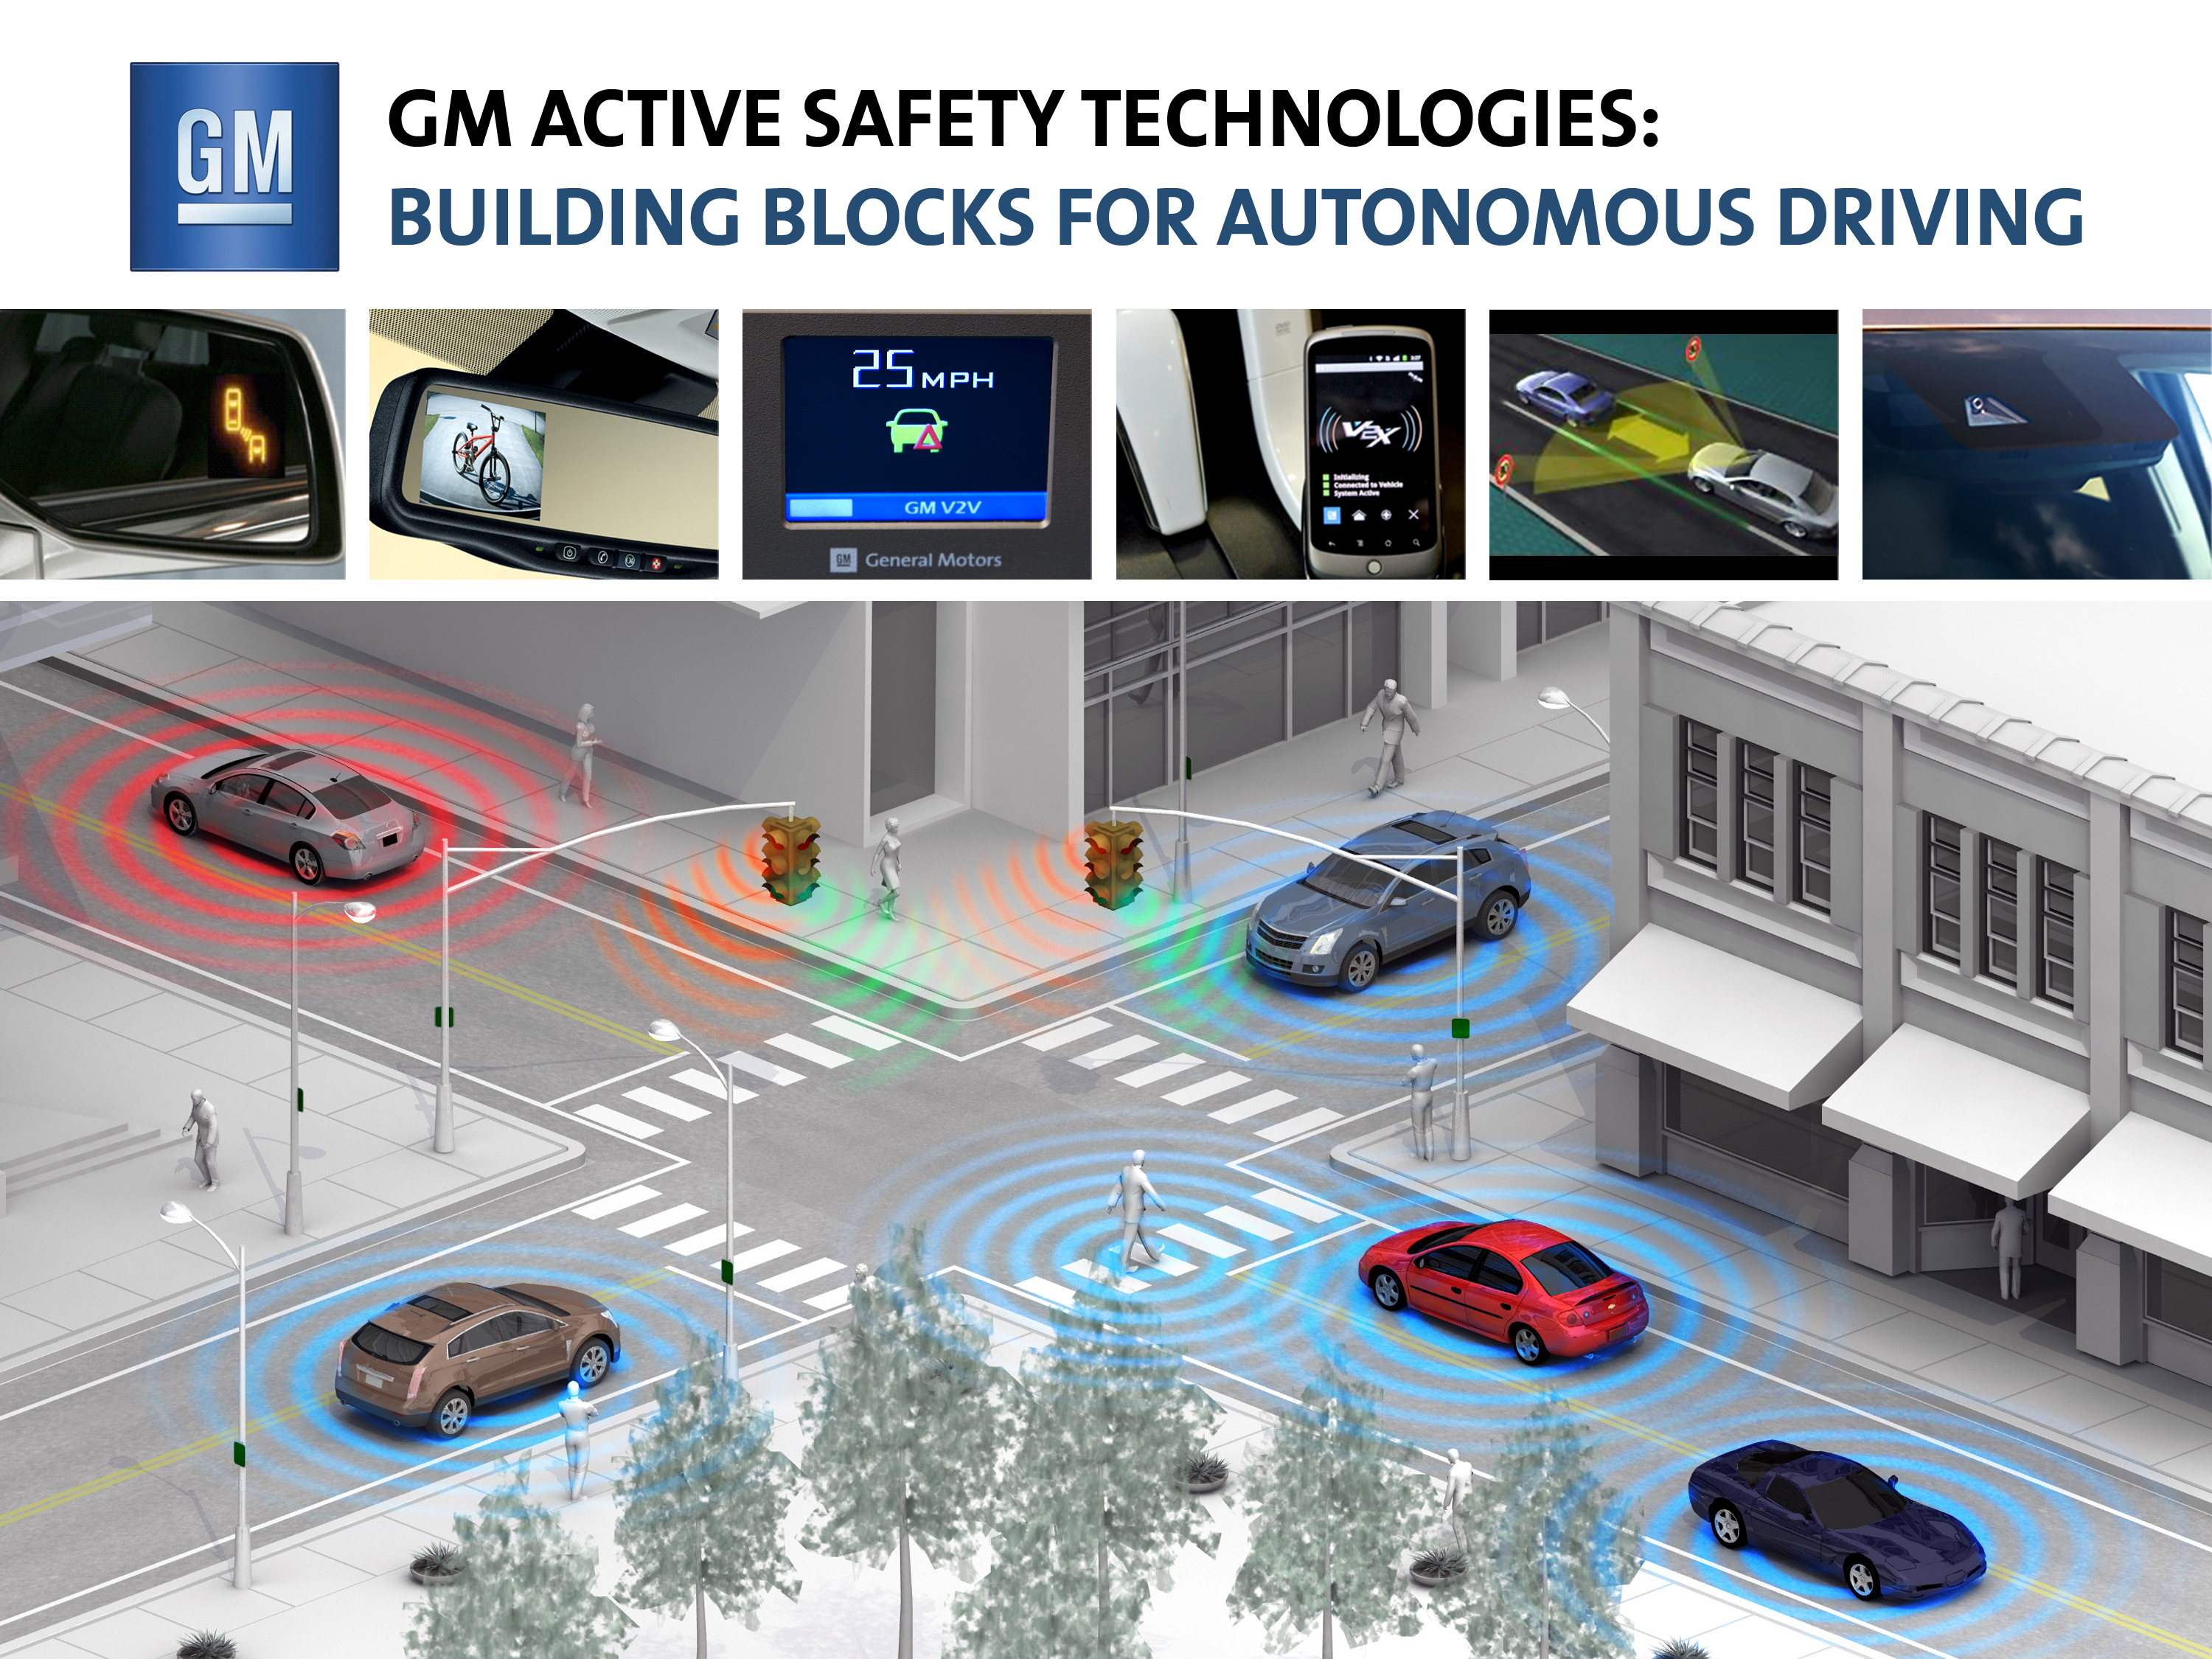 Gm Self Driving Vehicles Could Be Ready By End Of Decade